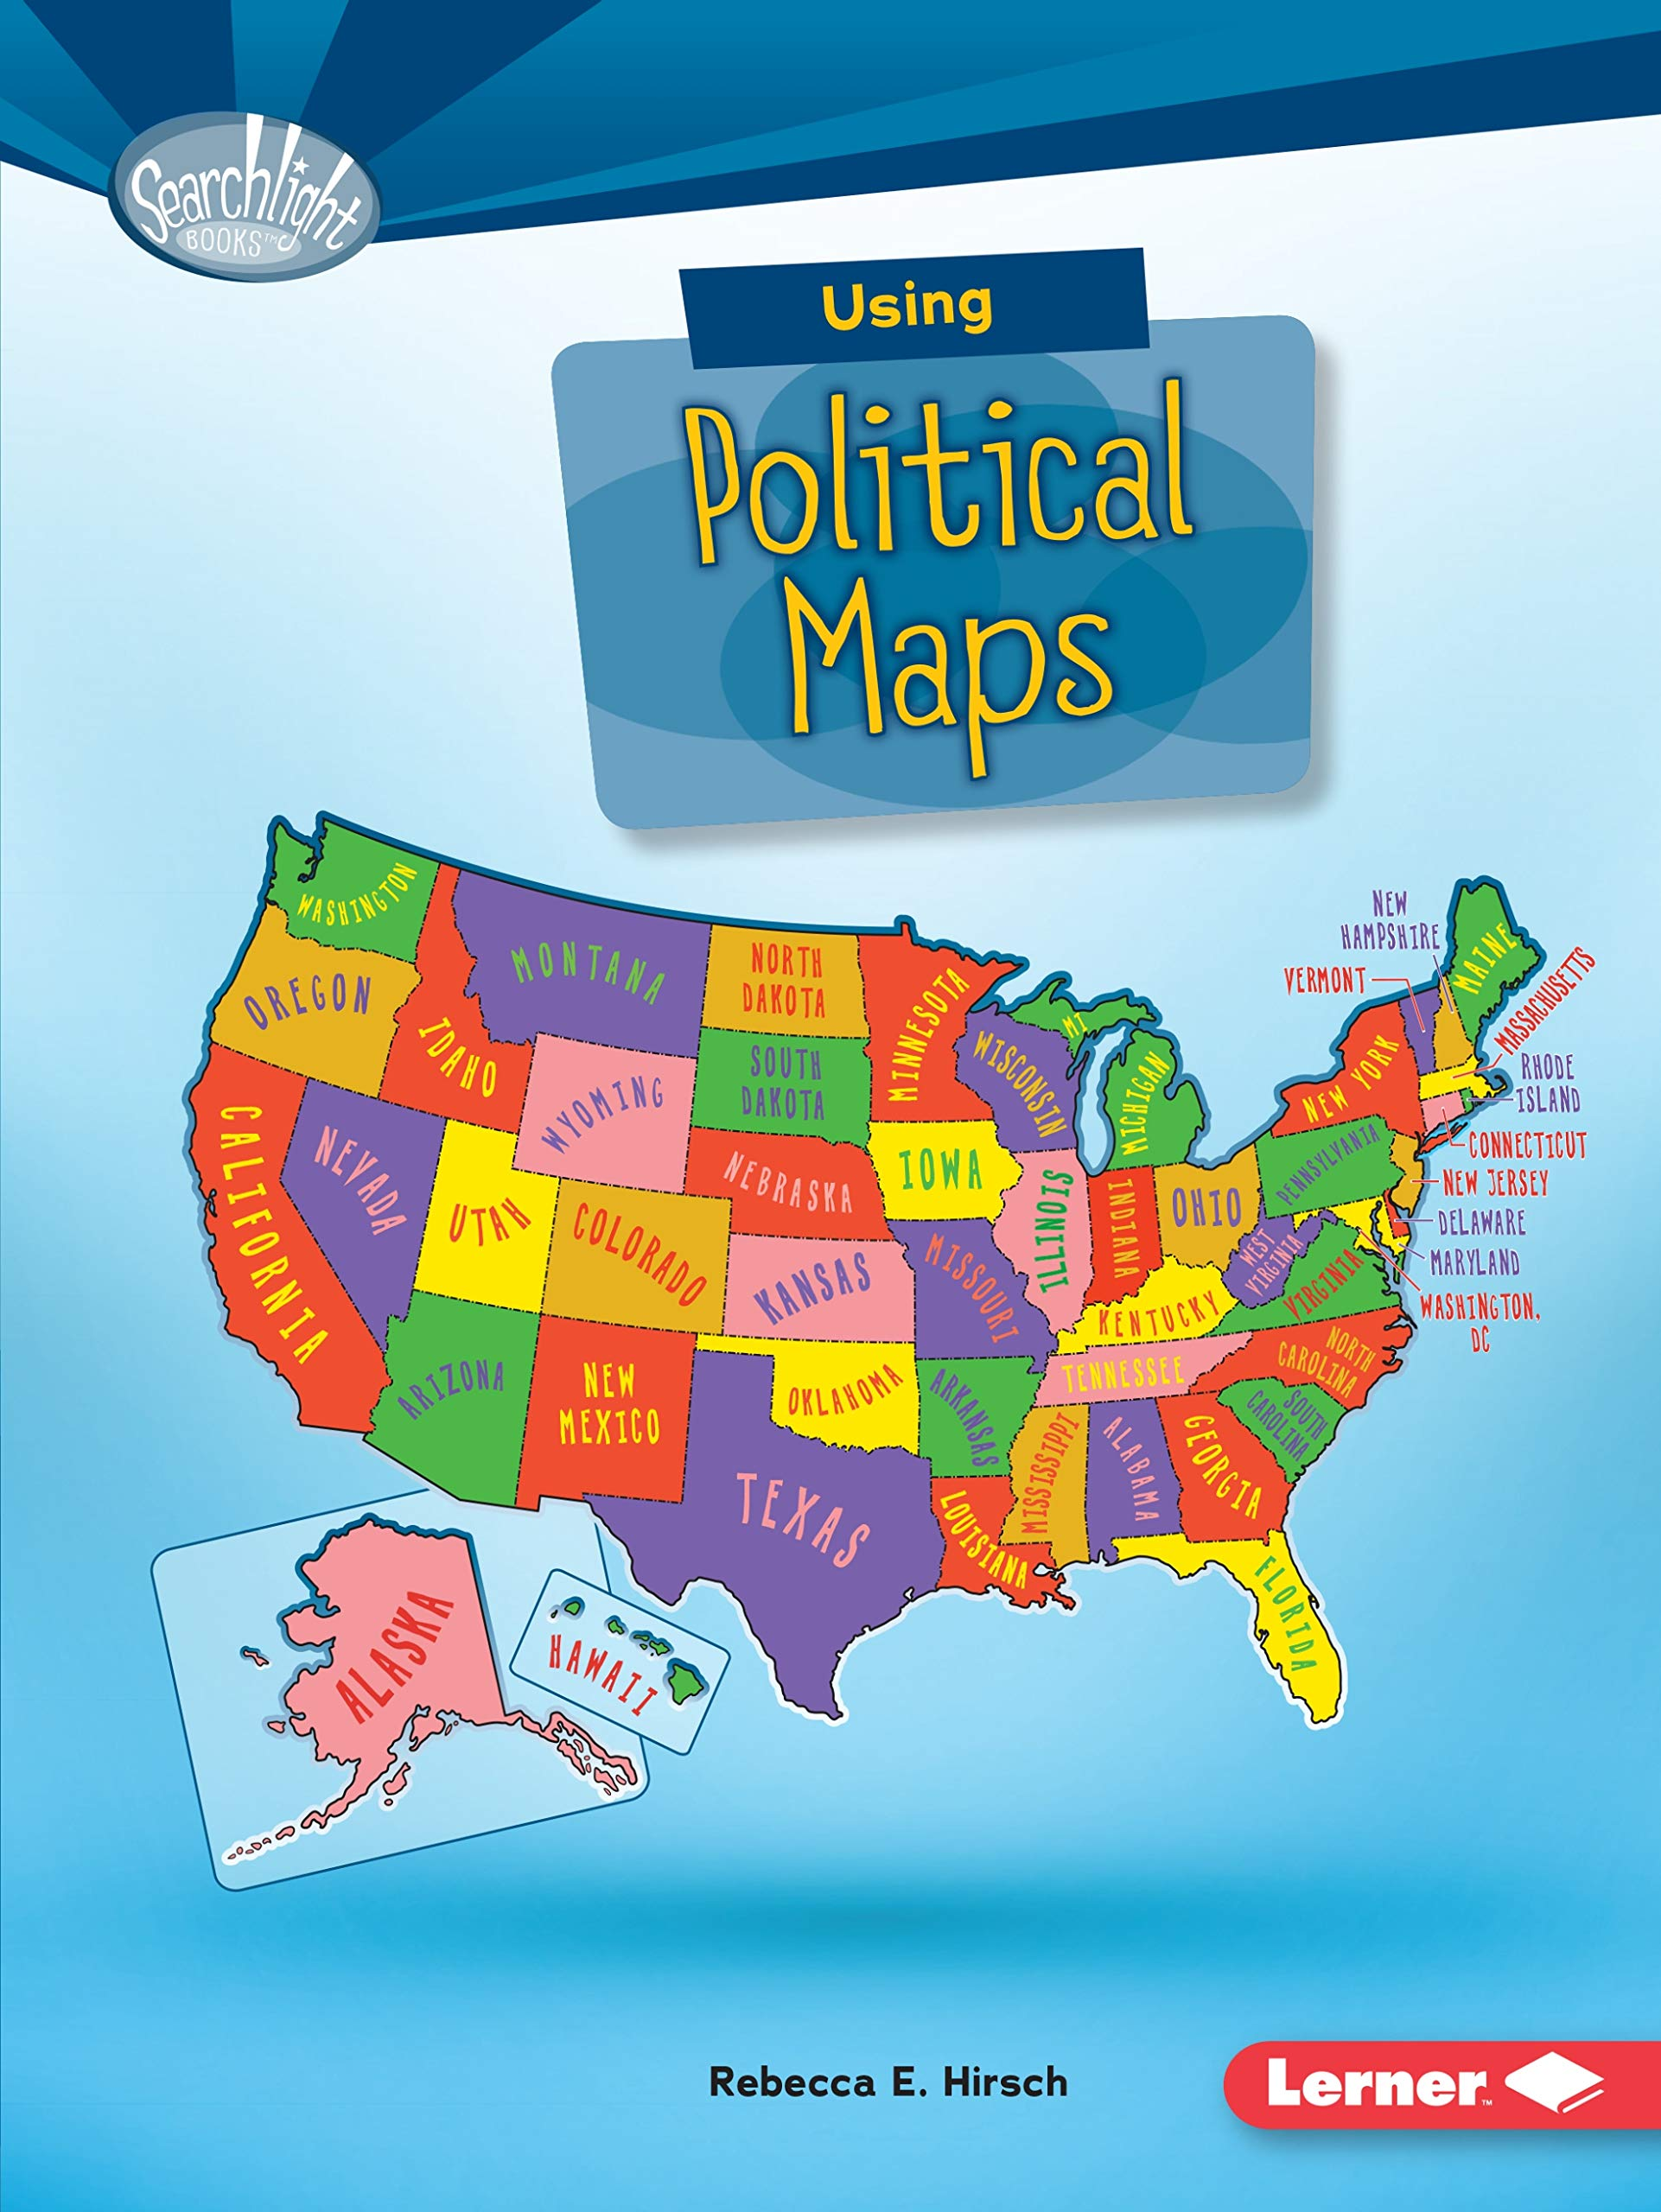 Using Political Maps Searchlight Books What Do You Know About Maps